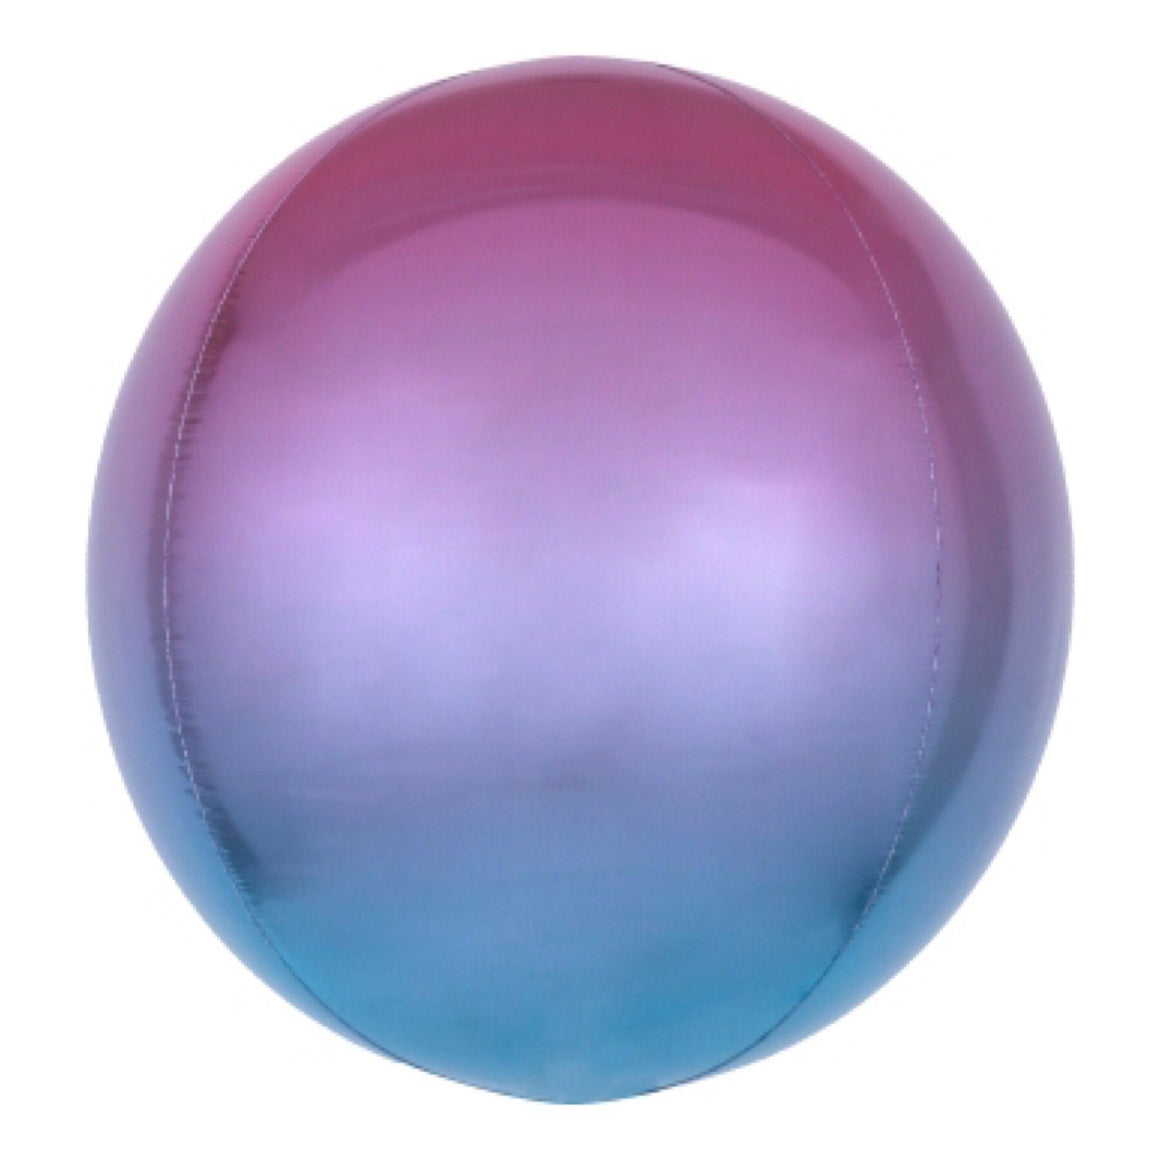 BALLOON BAR - ORBZ OMBRE PURPLE PINK BLUE, Balloons, Anagram - Bon + Co. Party Studio